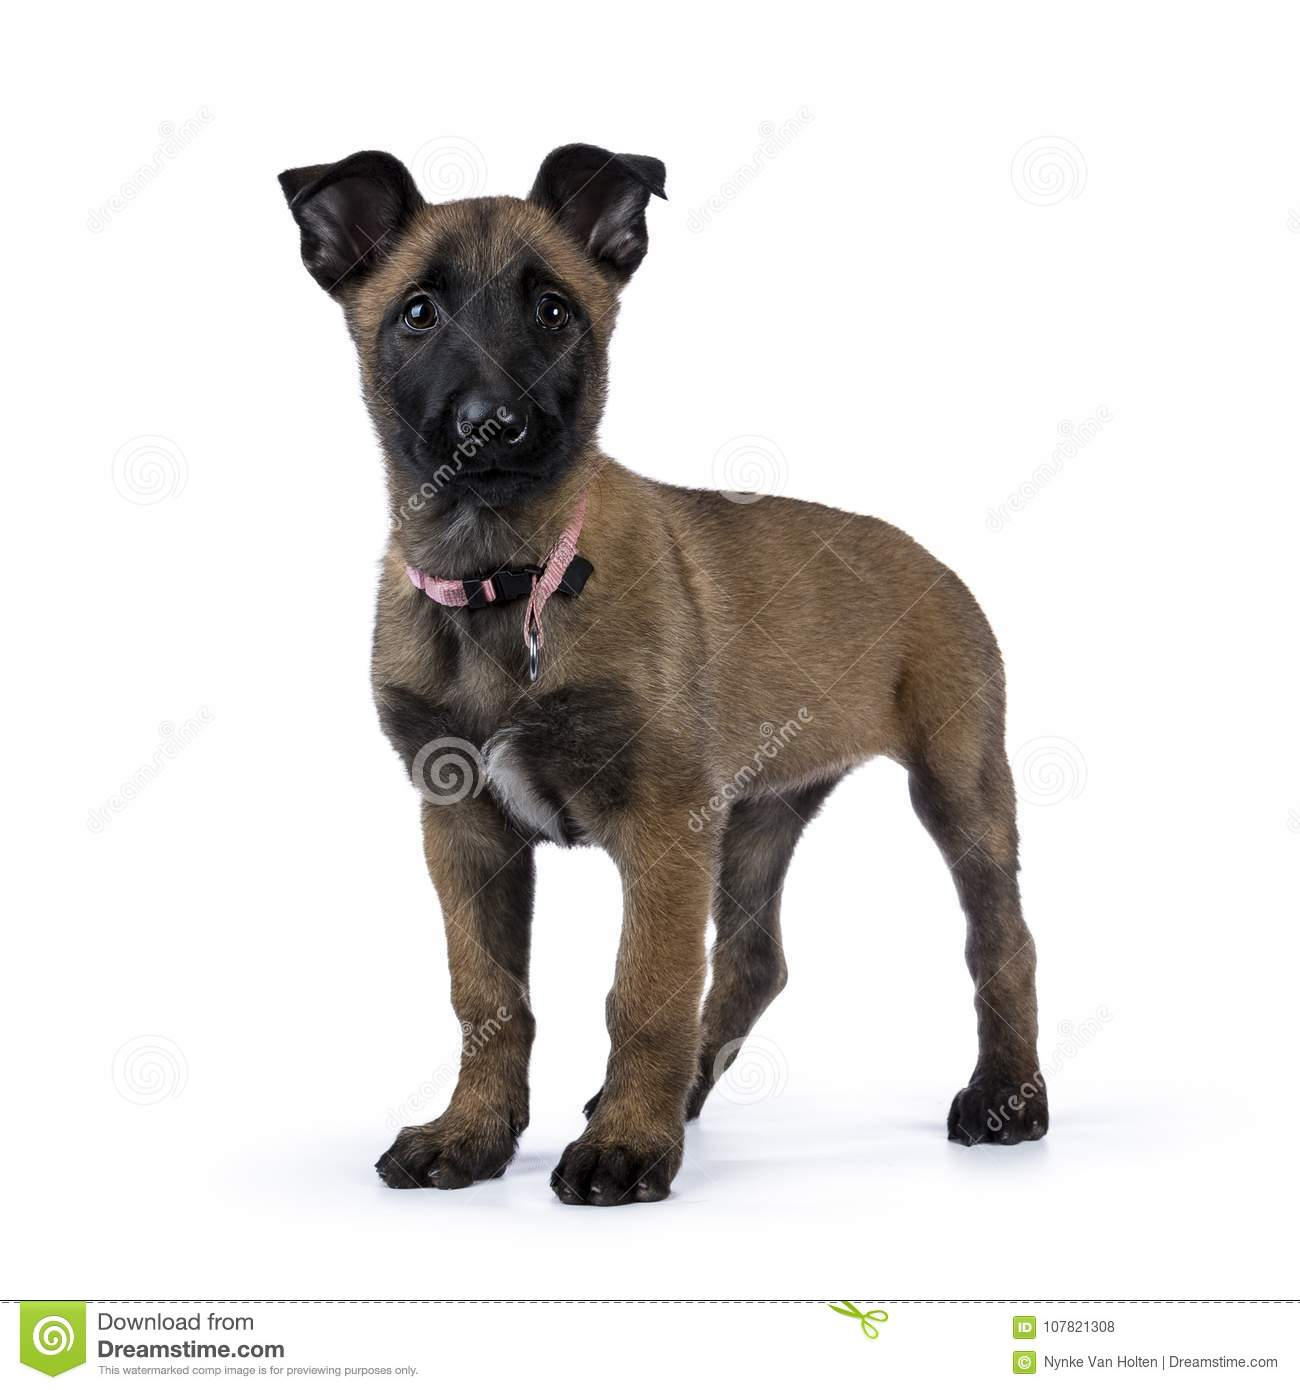 Belgian shepherd dog / puppy looking up standing isolated on white background